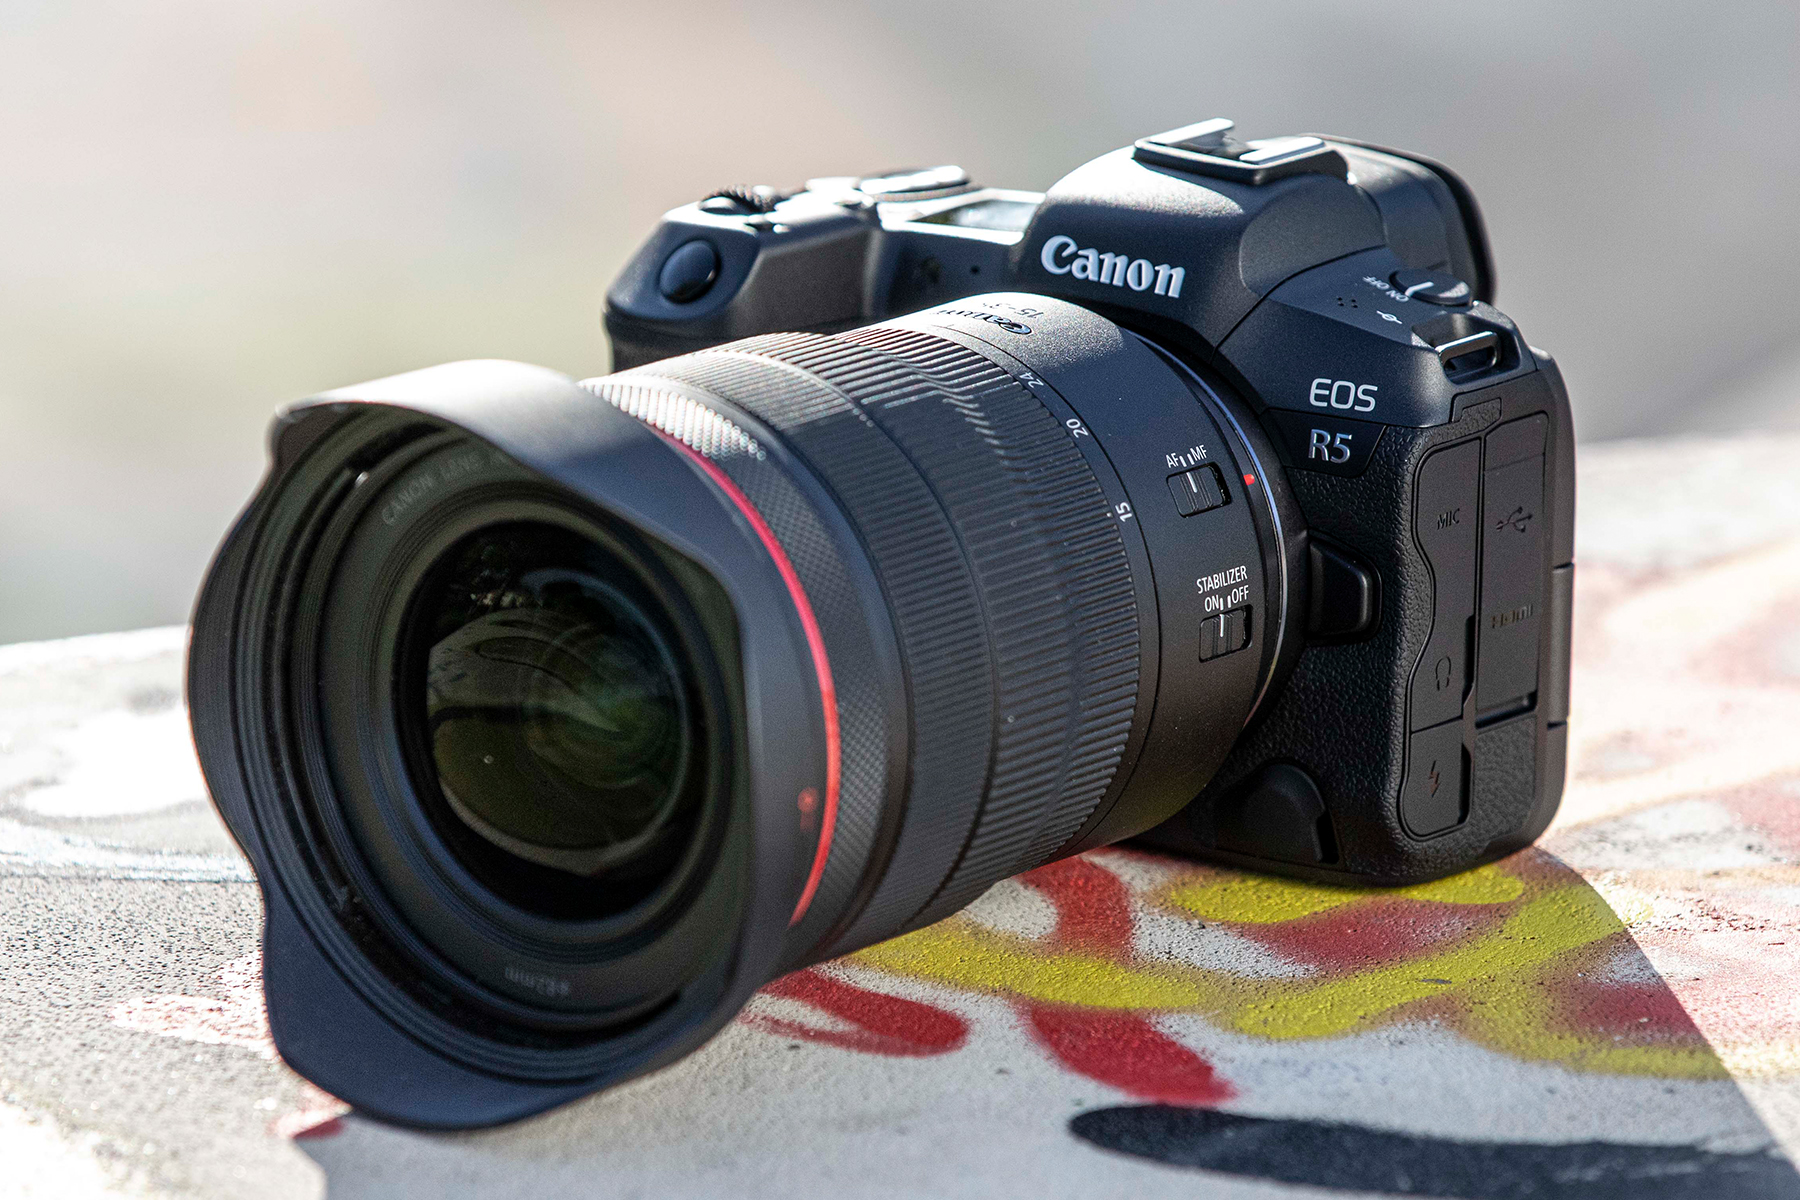 CANON REIMAGINES THE FUTURE